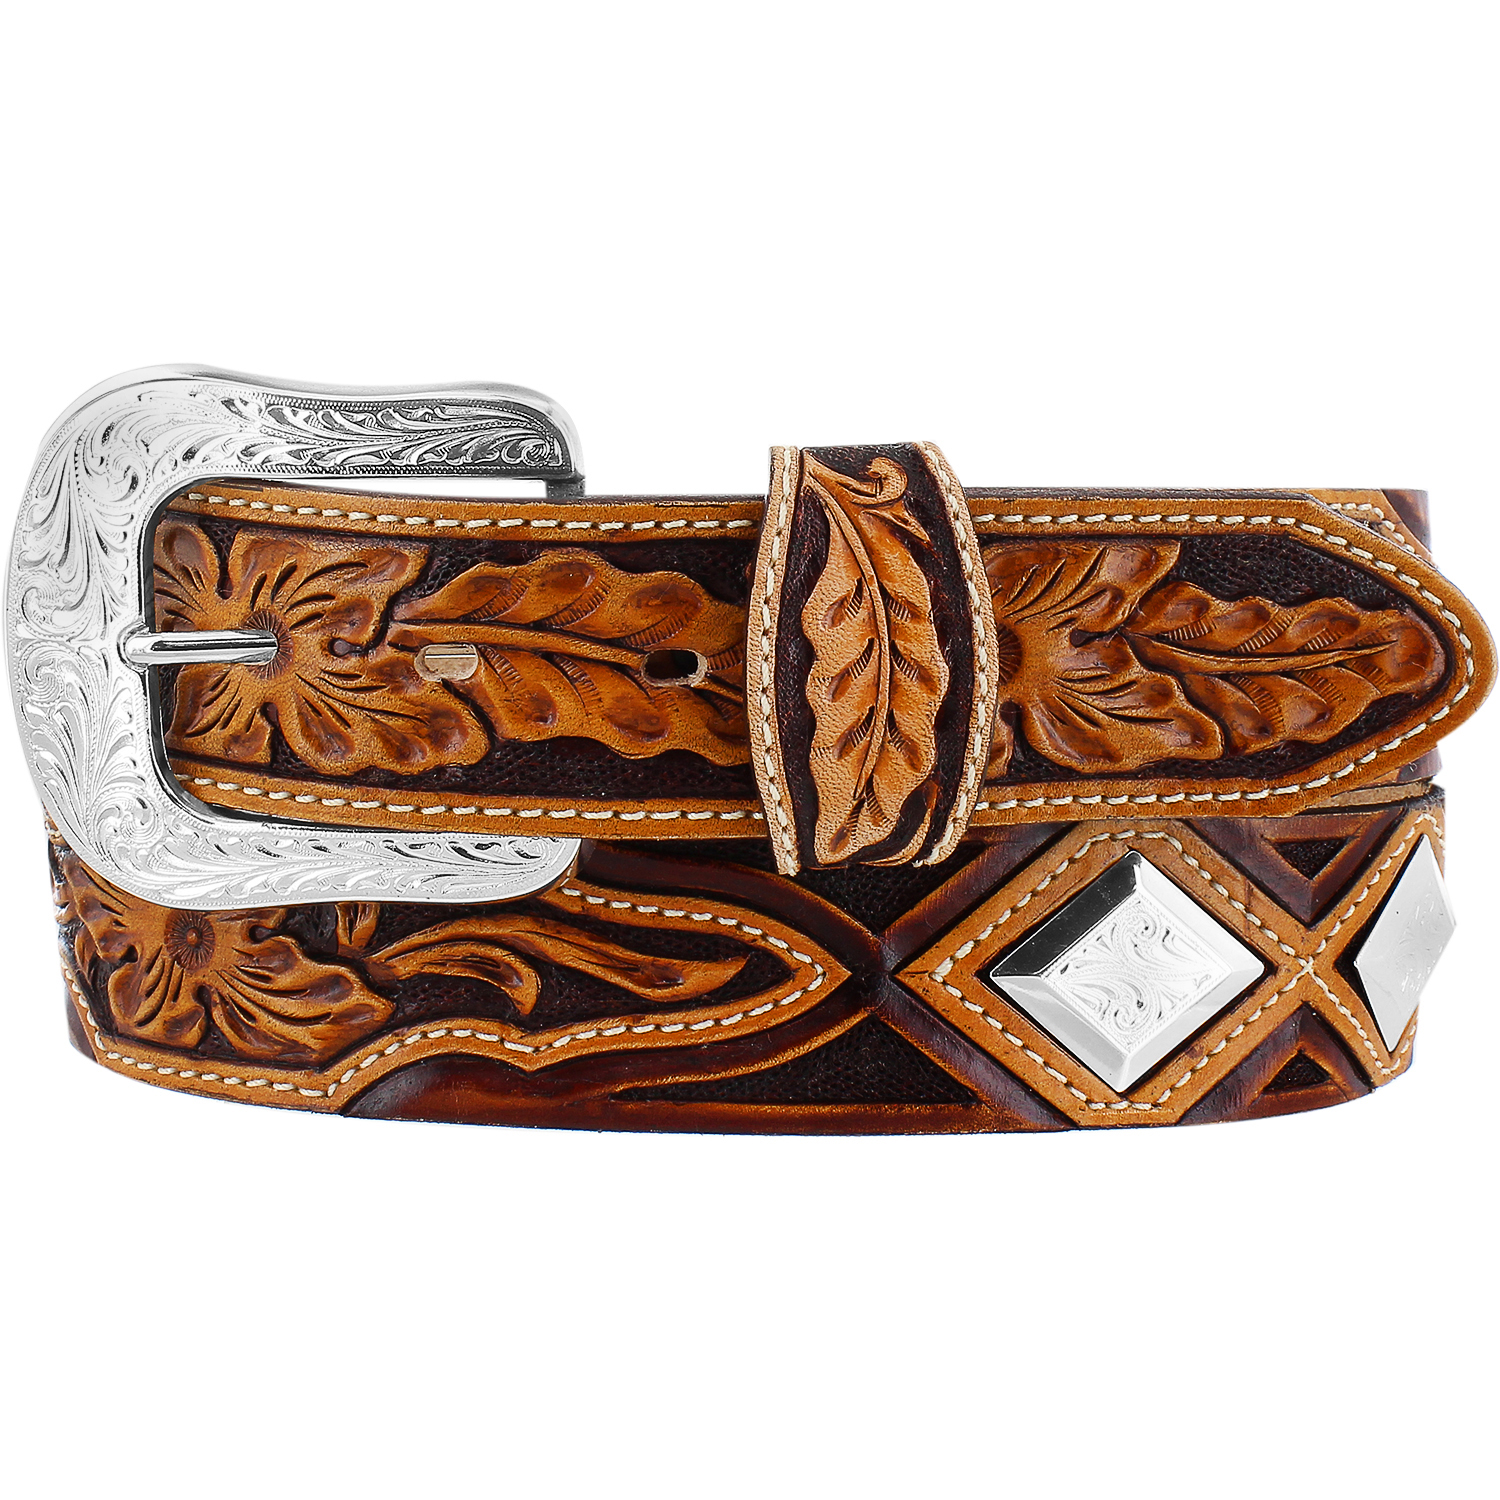 Diamonte Belt from Tony Lama